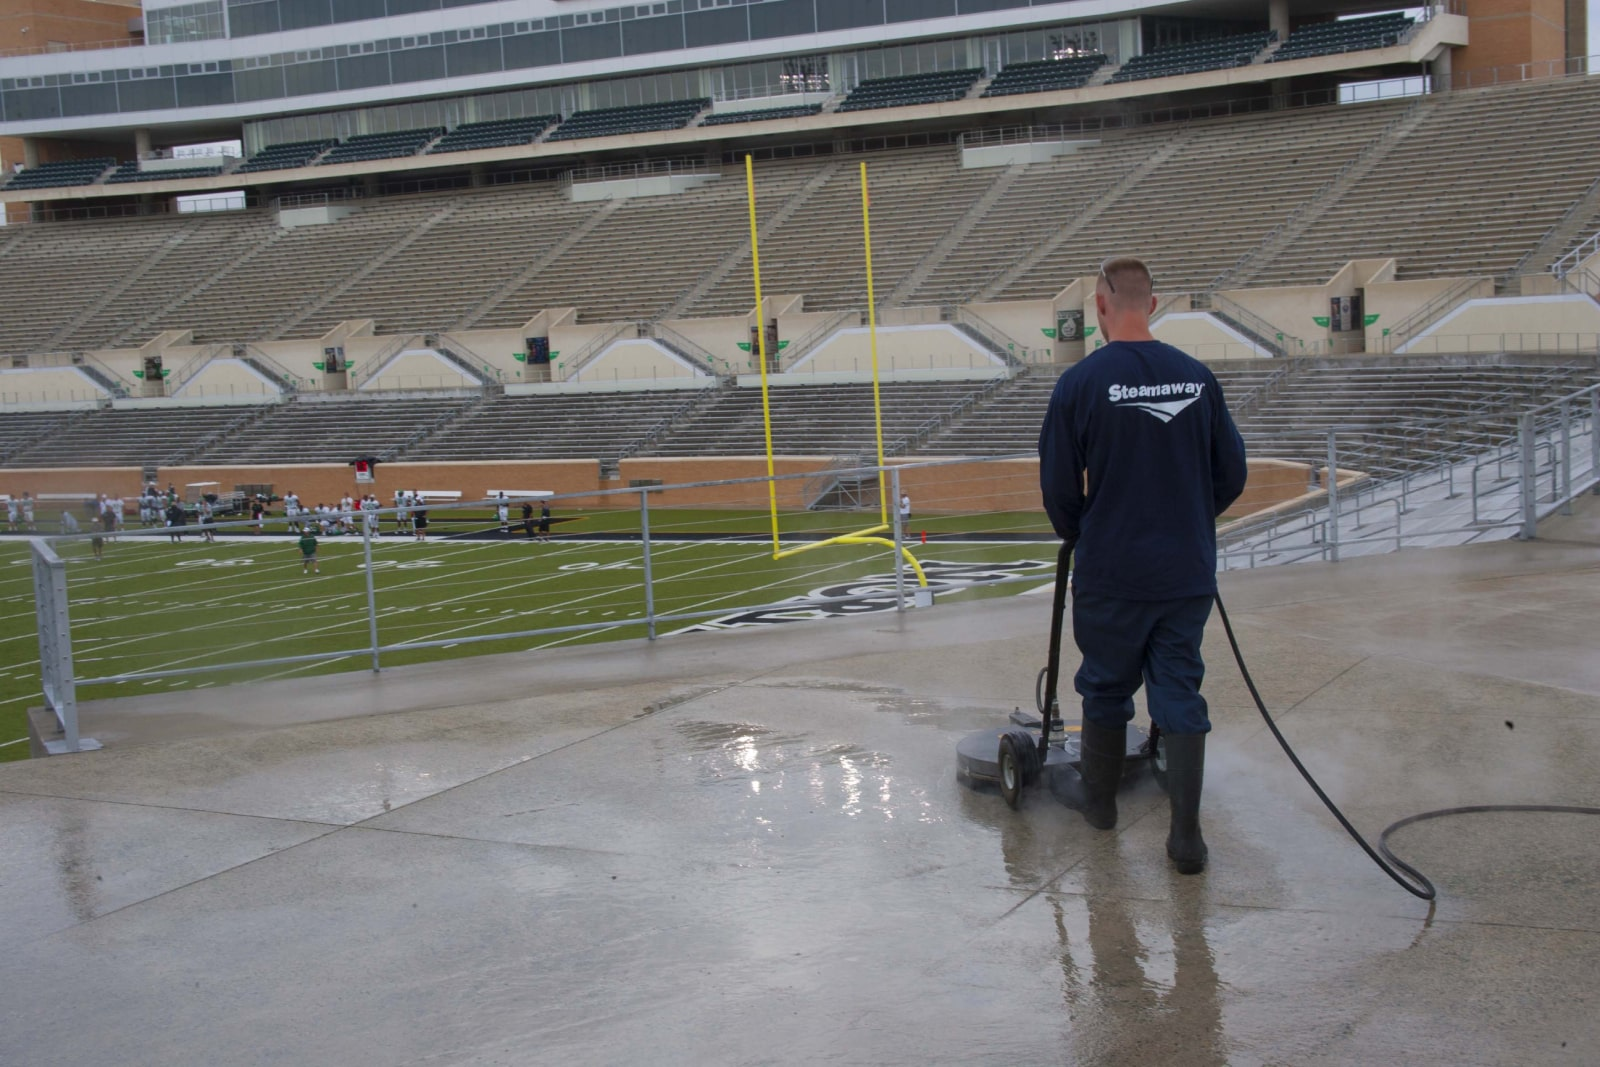 Commercial concrete cleaning of stadium floor